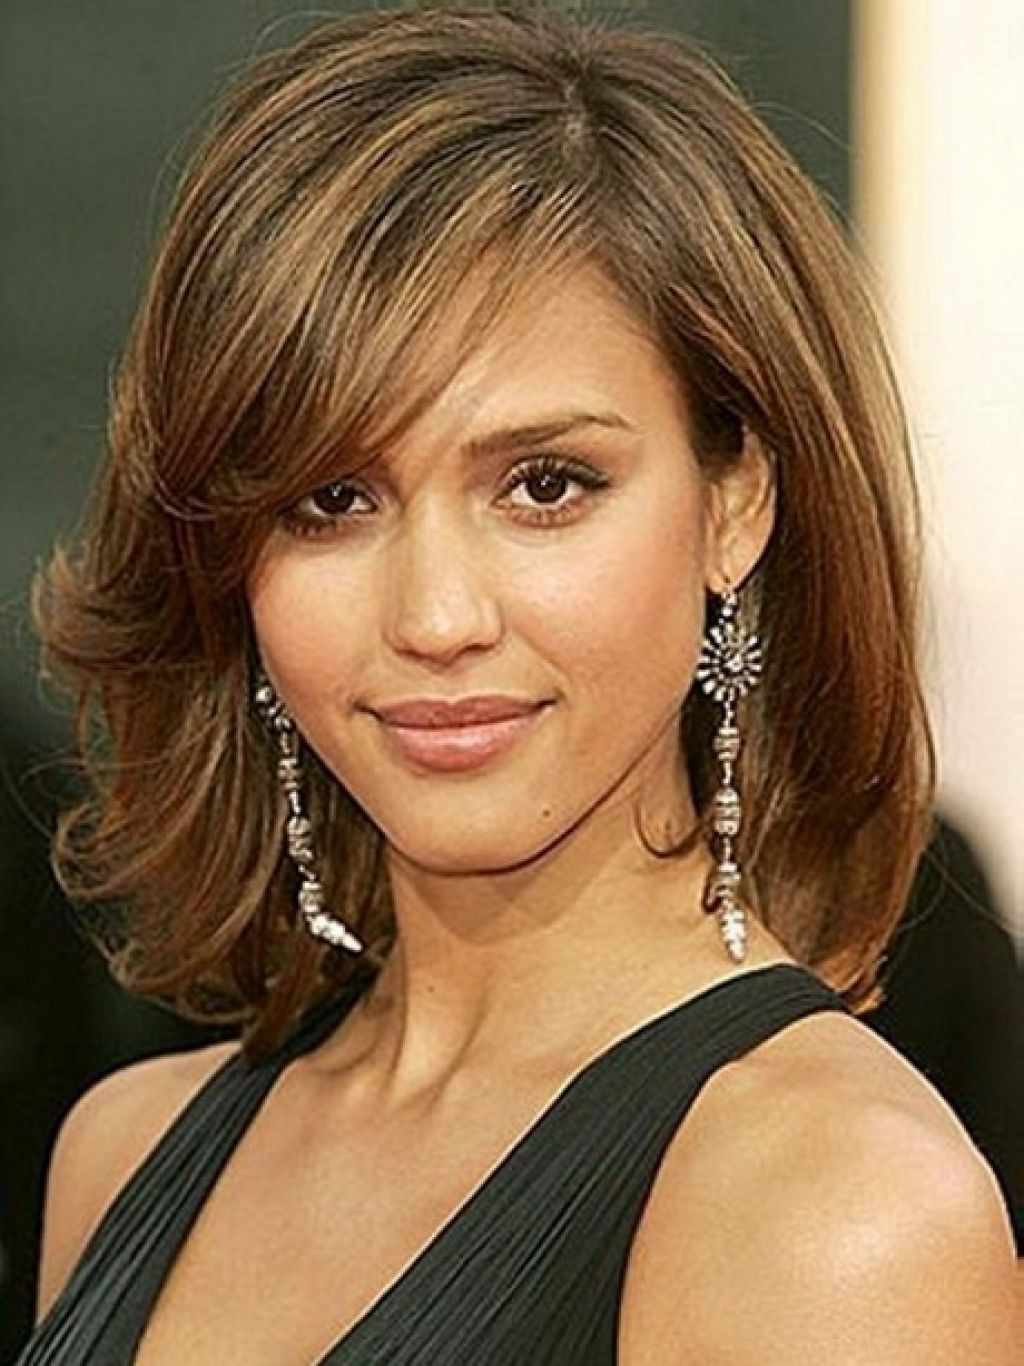 Medium Hairstyles For Women With Round Faces – Hairstyle For Women & Man Inside Most Popular Women Medium Haircuts For Round Faces (View 15 of 20)